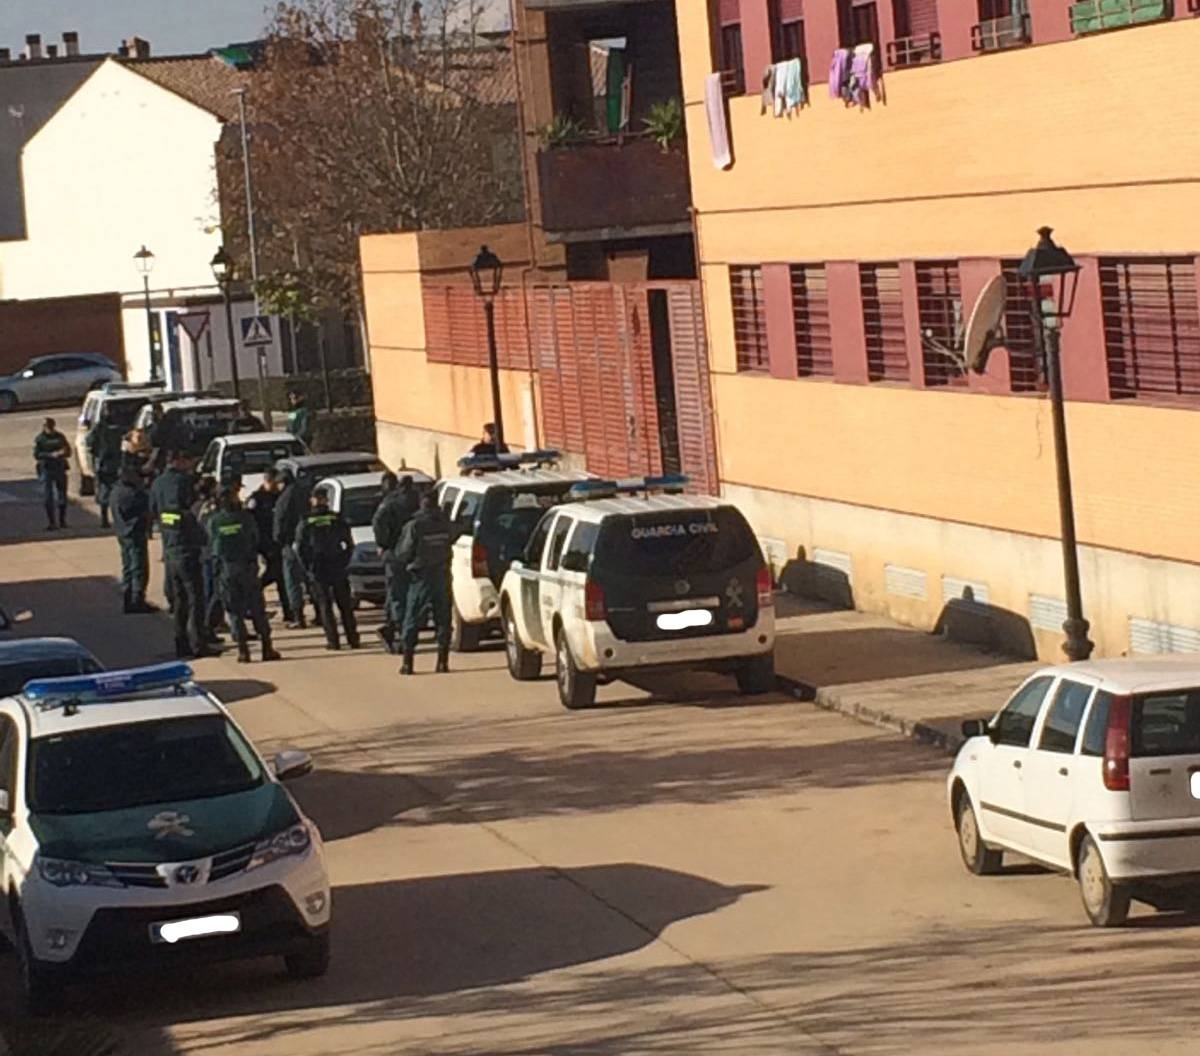 redada guardia civil en herencia - Importante operación antidroga en Herencia